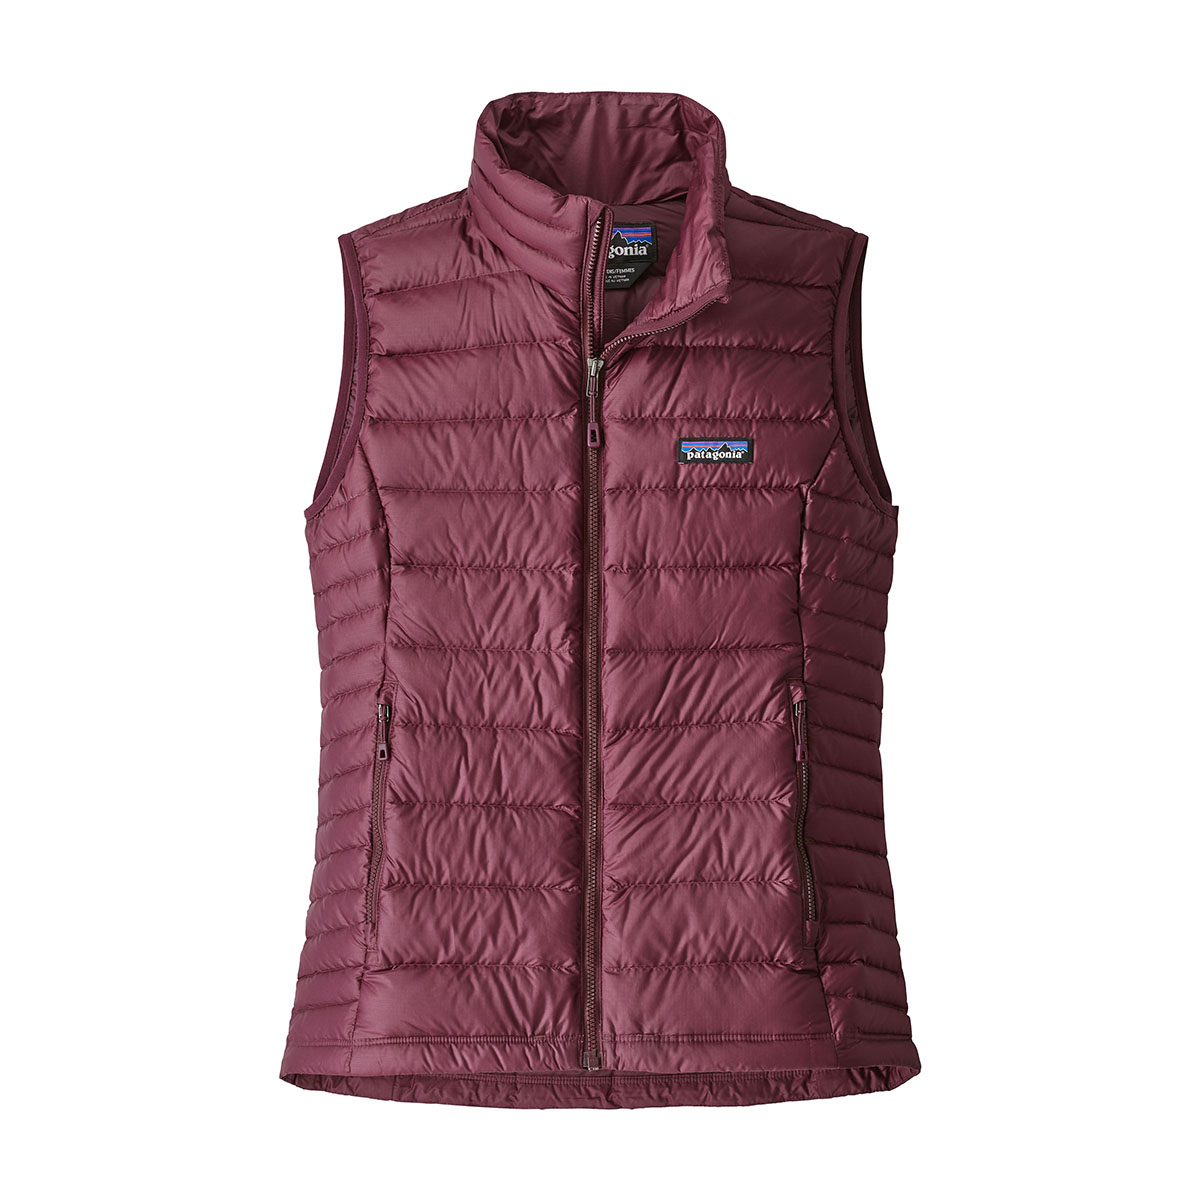 Patagonia Women's Down Sweater Vest 84628 F8